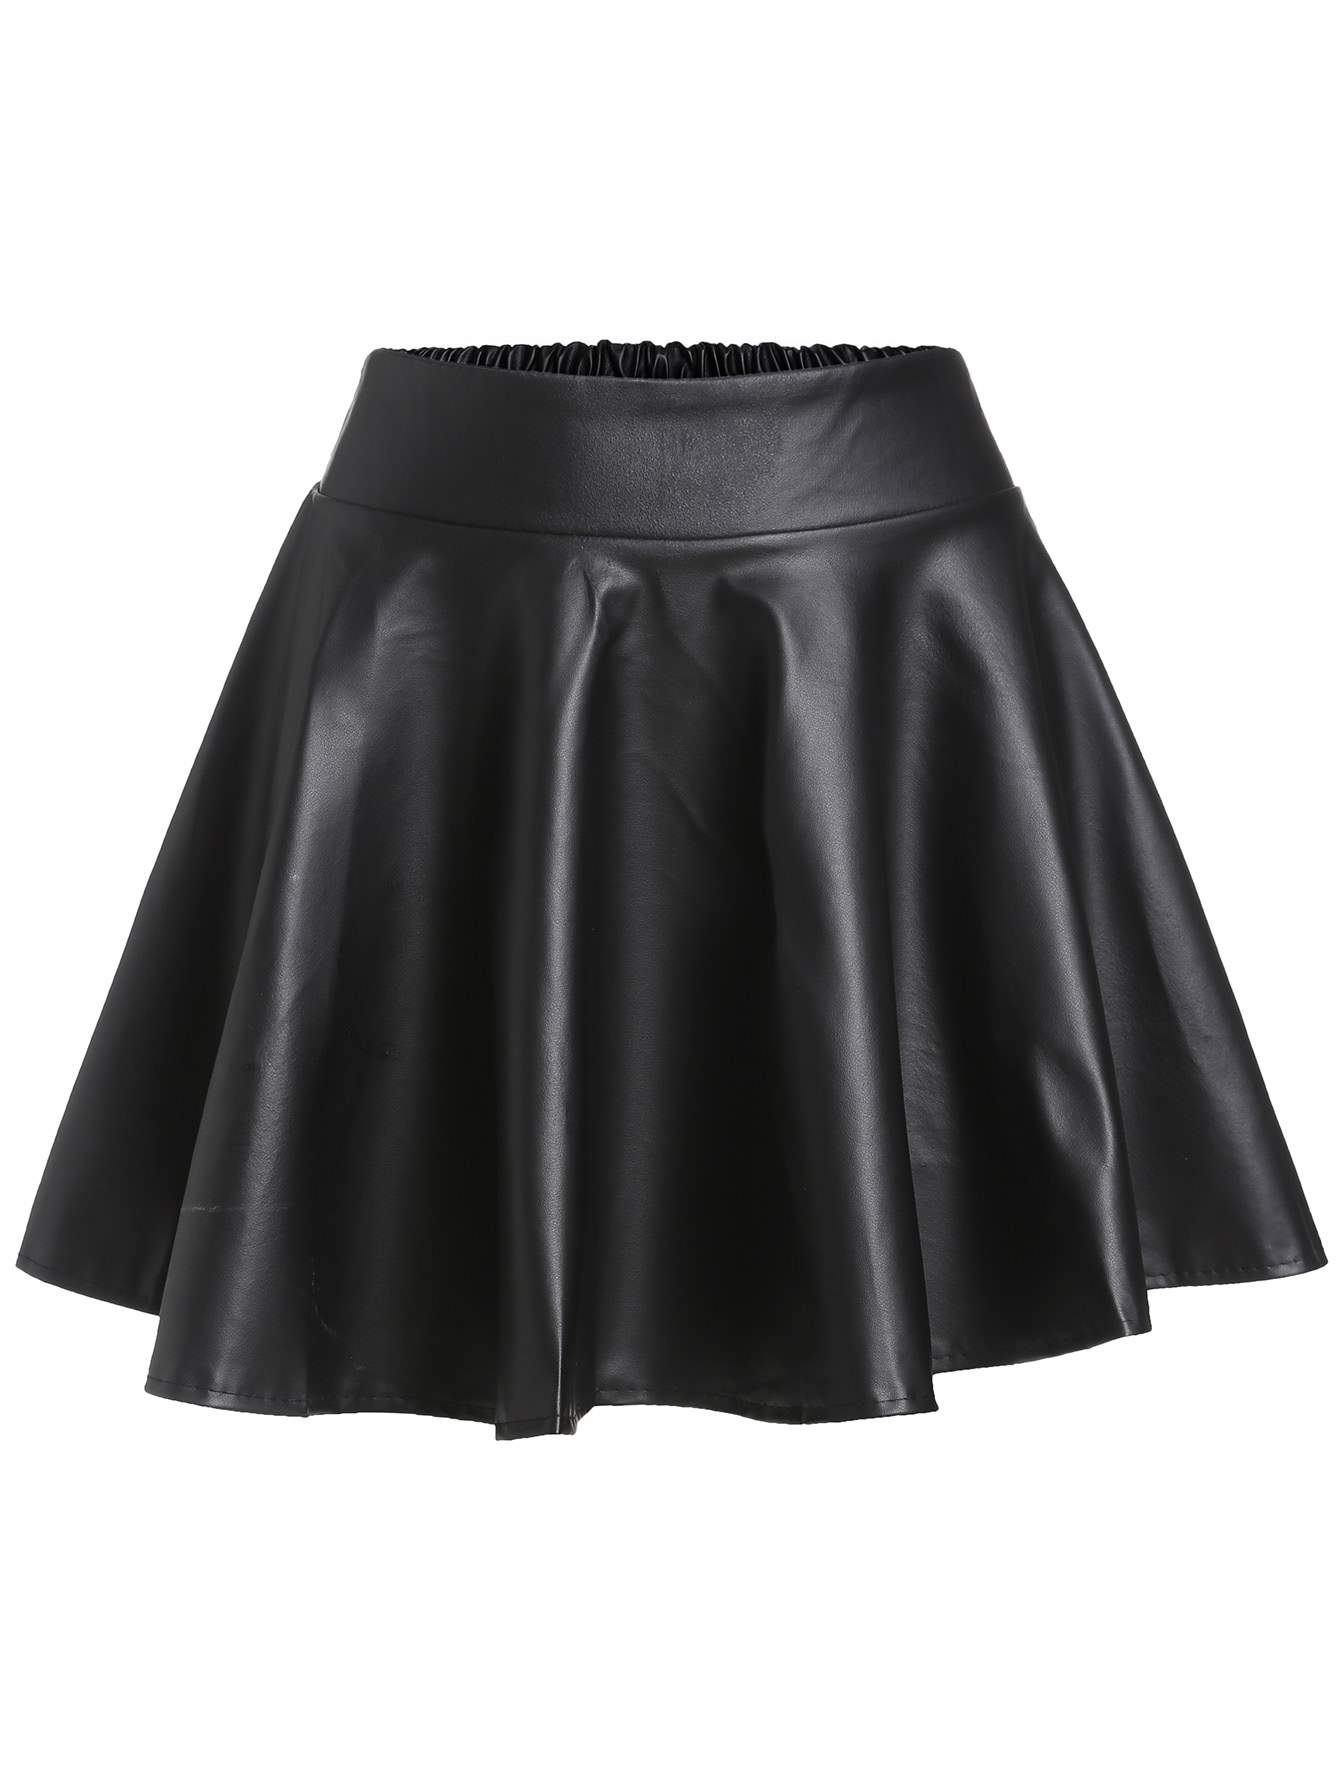 Enjoy free shipping and easy returns every day at Kohl's. Find great deals on Black Skirts at Kohl's today!